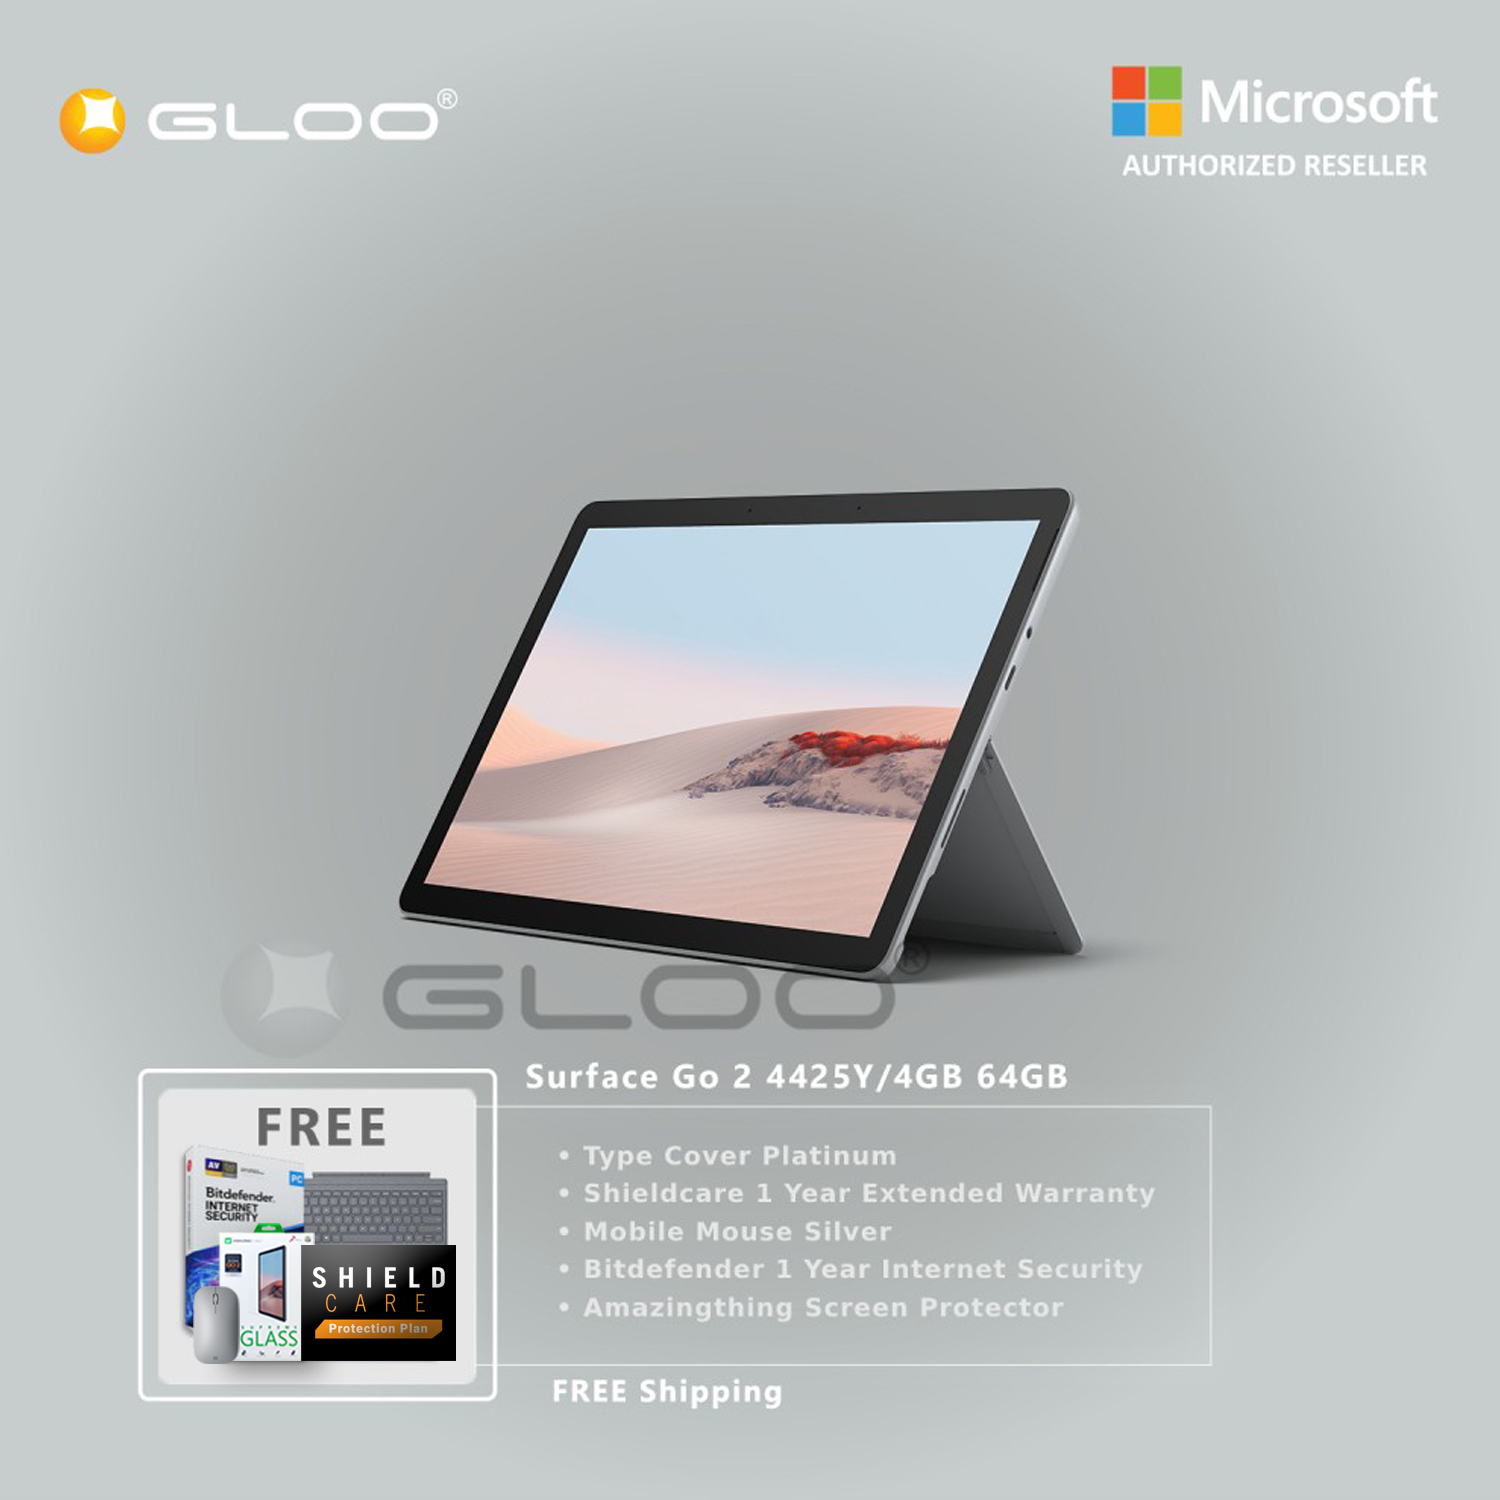 Microsoft Surface Go 2 4425Y/4GB 64GB + Surface Go Type Cover Platinum + Shield Care 1 Year Extended Warranty + Bitdenfender 1 Year Internet Security + Mobile Mouse Silver + Amazingthing Screen Protector [BPPMSOFTVTCBLA]